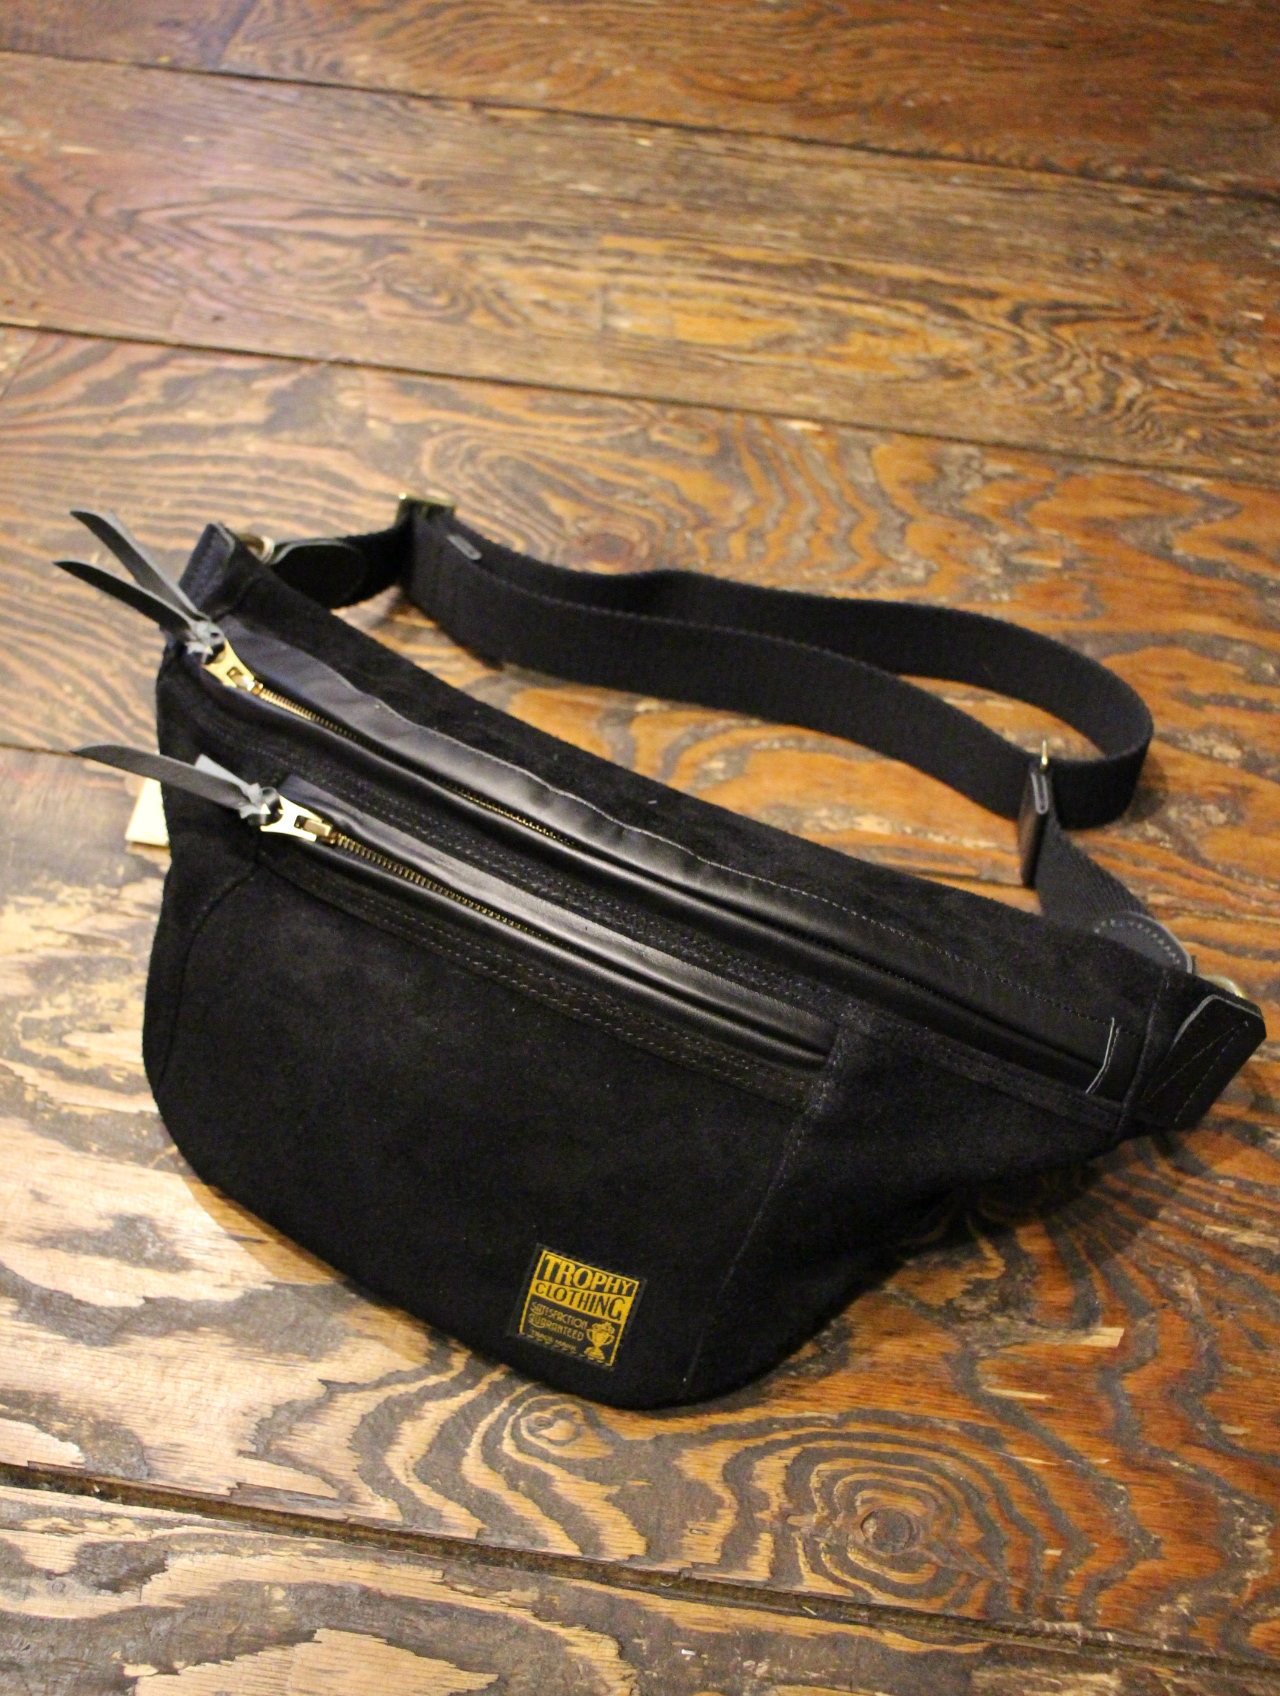 TROPHY CLOTHING  「Day Trip Suede Bag」  ショルダーバッグ